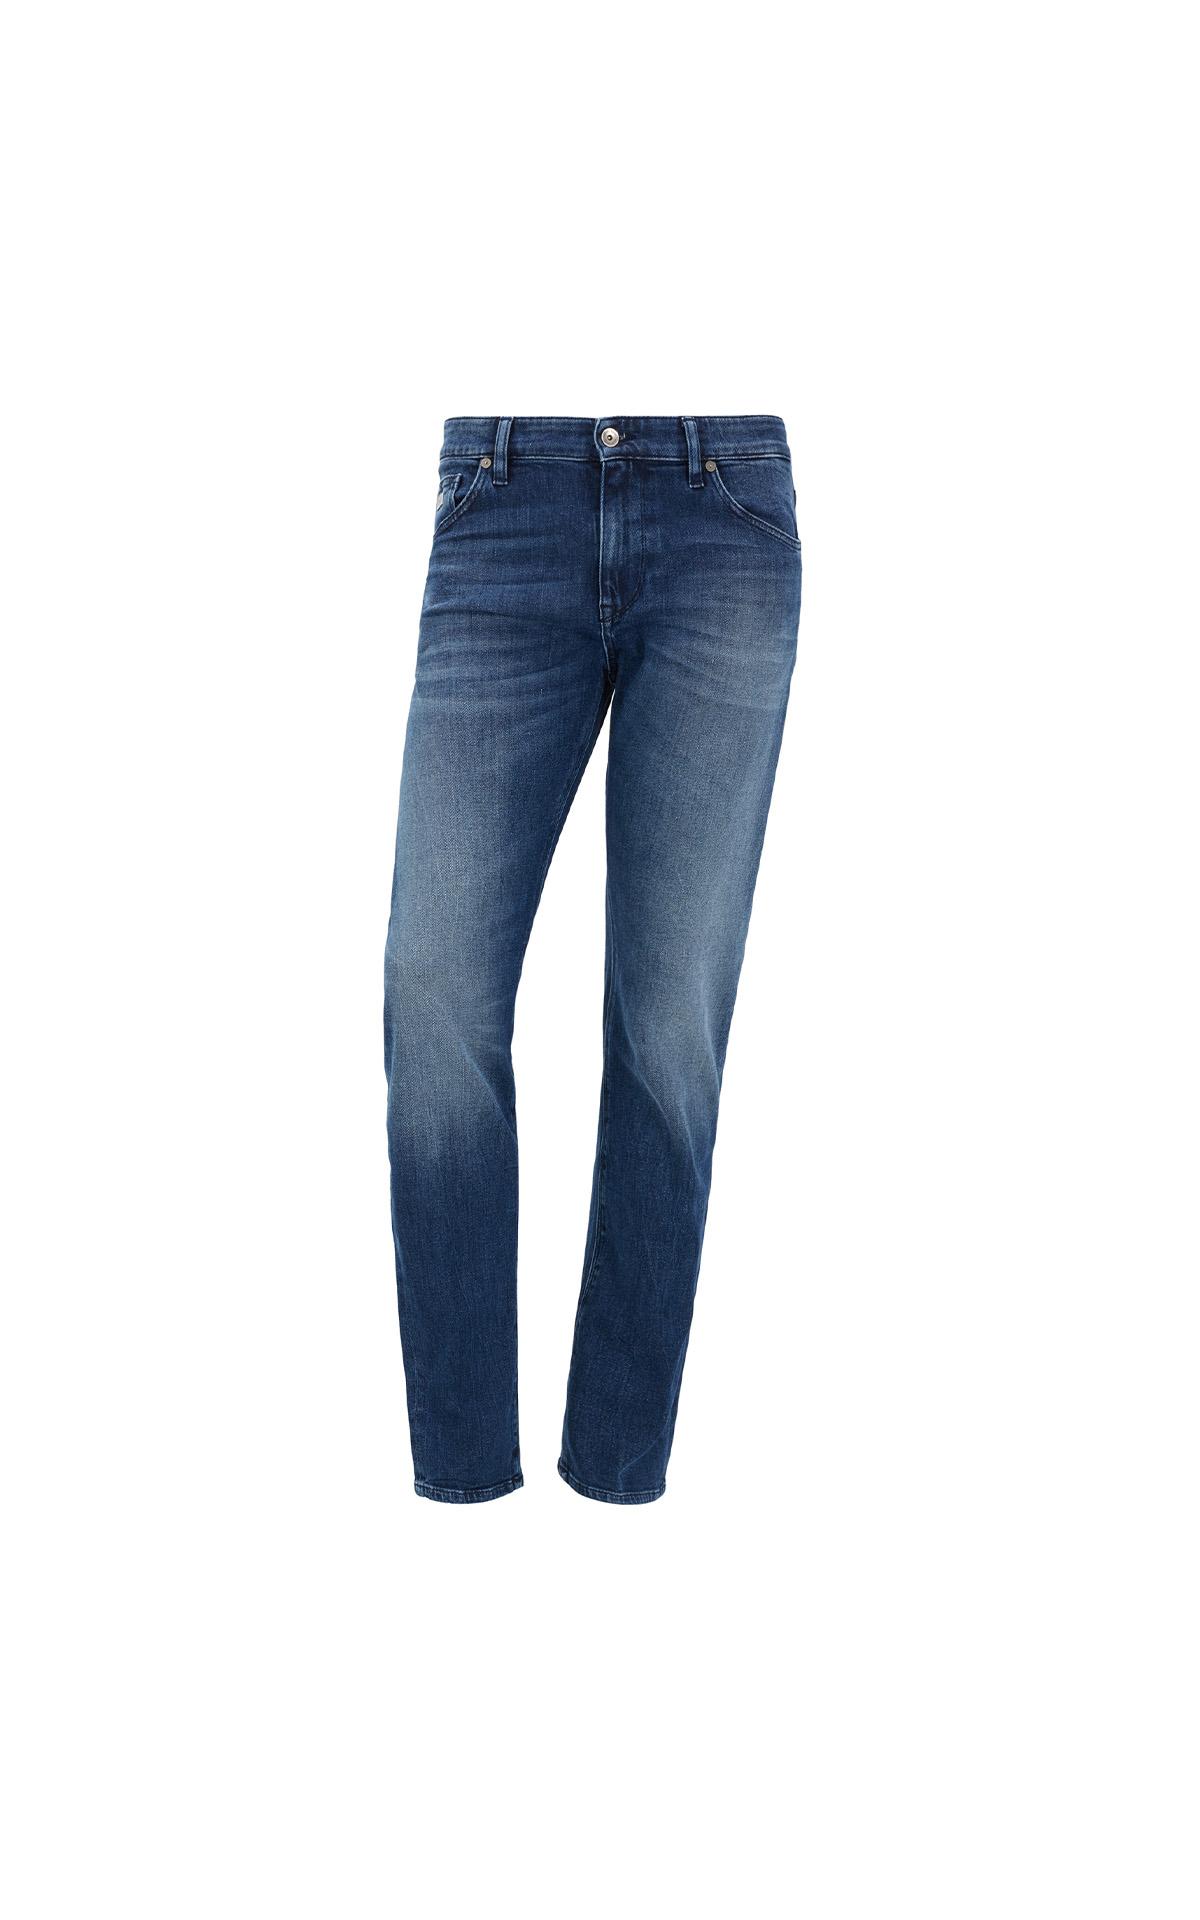 Boss Maine3 Regular-fit jeans in dark blue comfort-stretch denim at The Bicester Village Shopping Collection